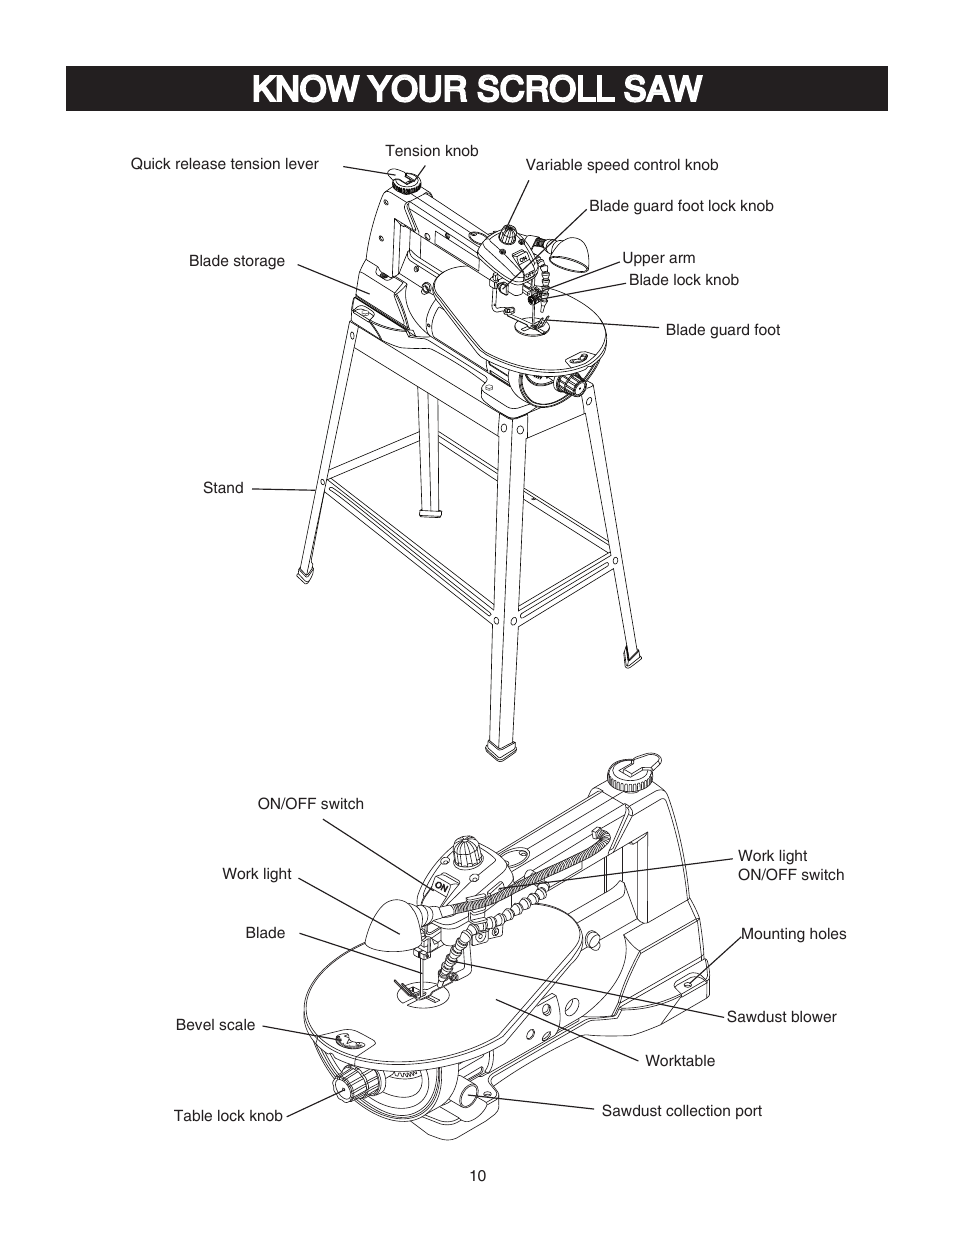 Know Your Scroll Saw Porter Cable Pcb370ss User Manual Page 10 28 Diagram